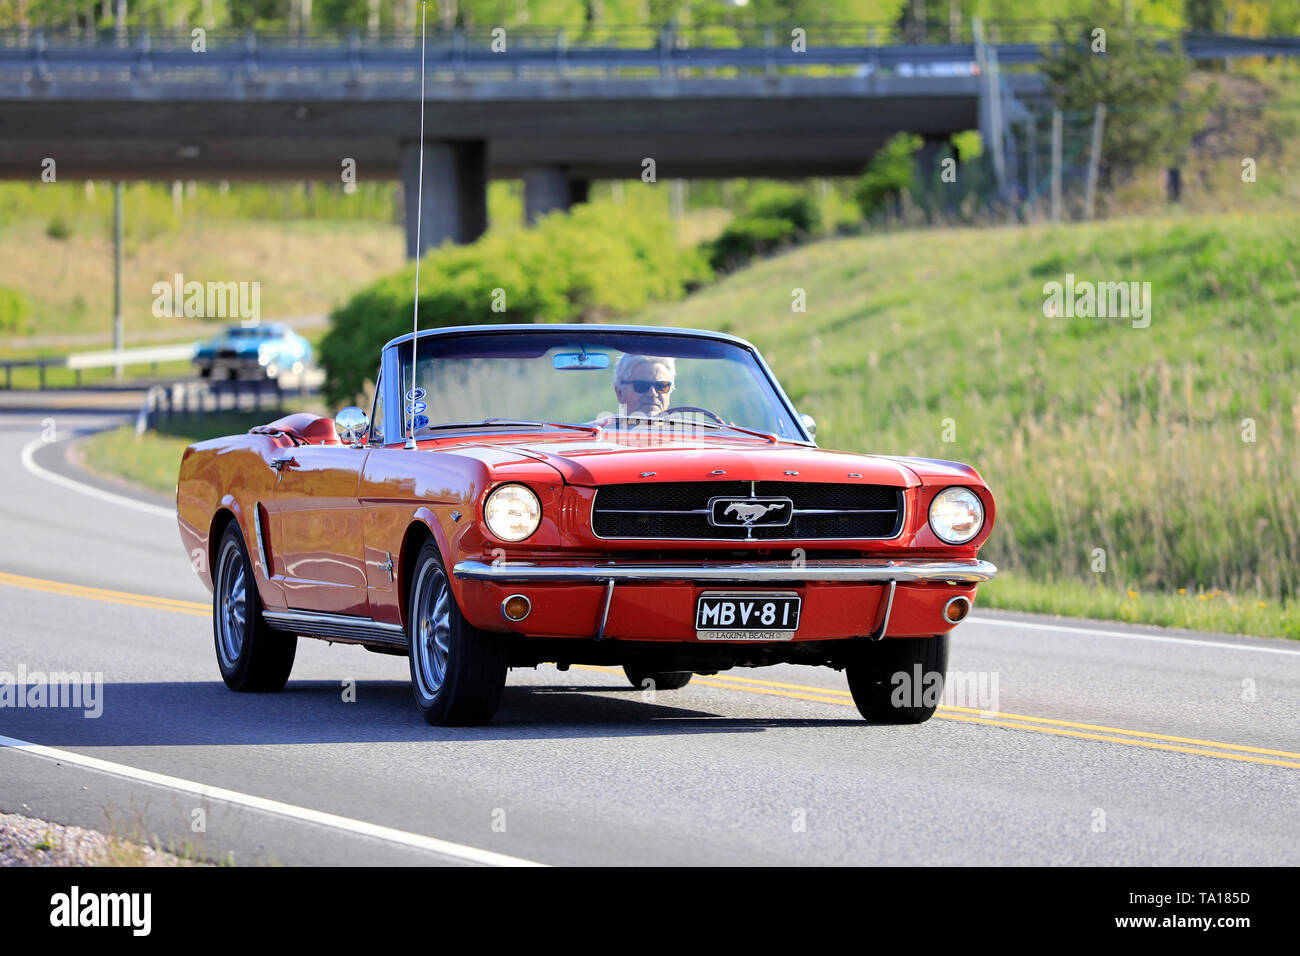 Salo, Finland. May 18, 2019. Classic 1960s red Ford Mustang convertible on the road on Salon Maisema Cruising 2019. - Stock Image